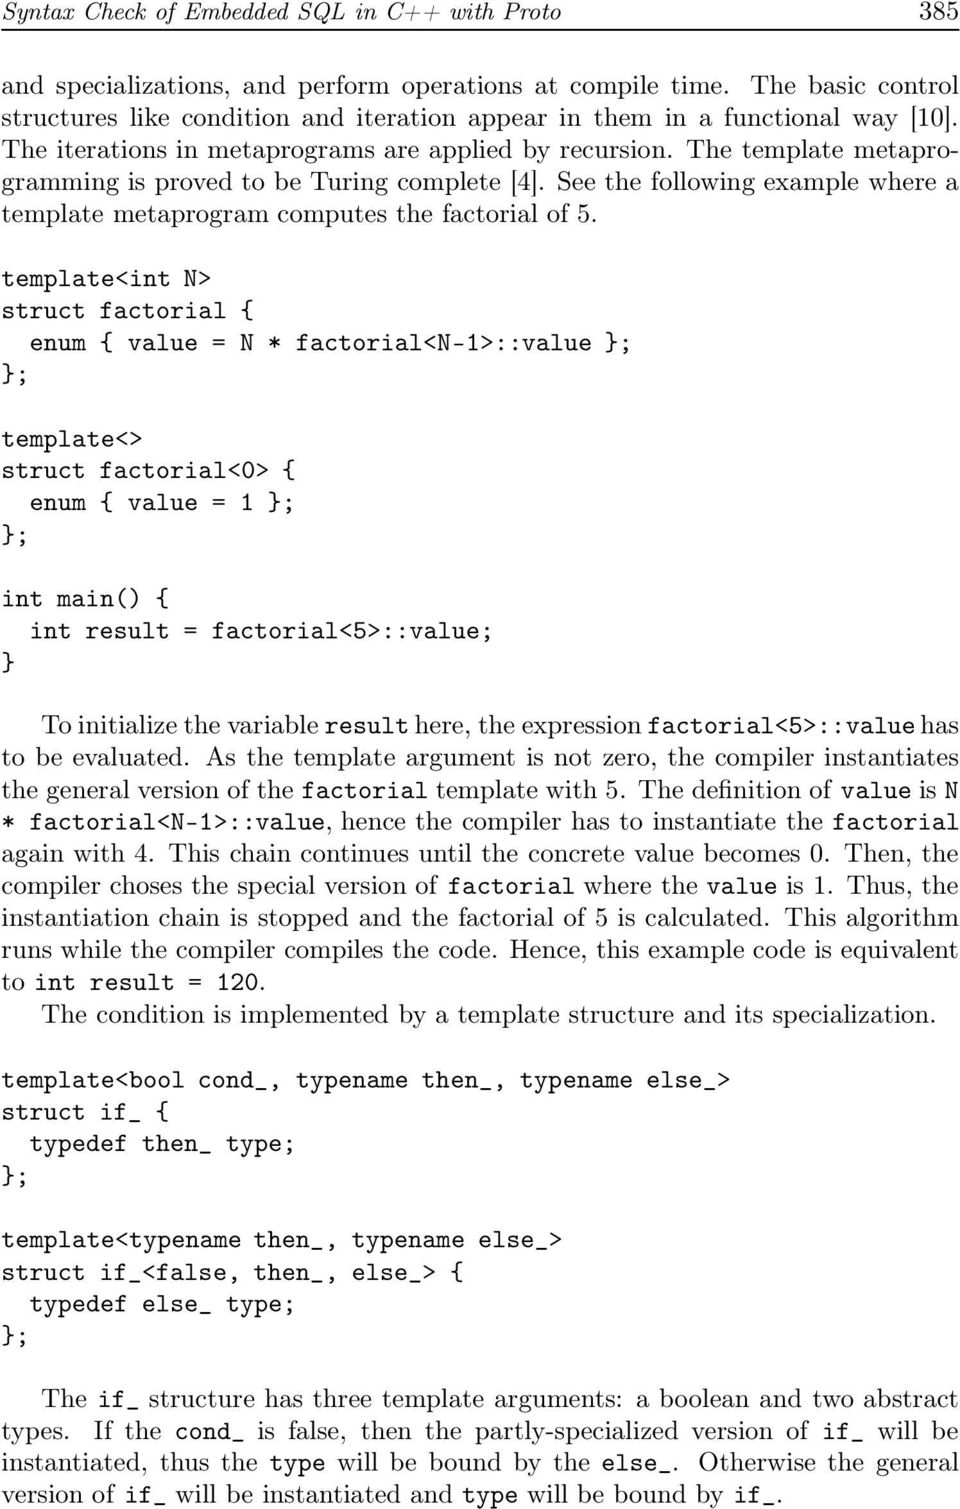 The template metaprogramming is proved to be Turing complete [4]. See the following example where a template metaprogram computes the factorial of 5.